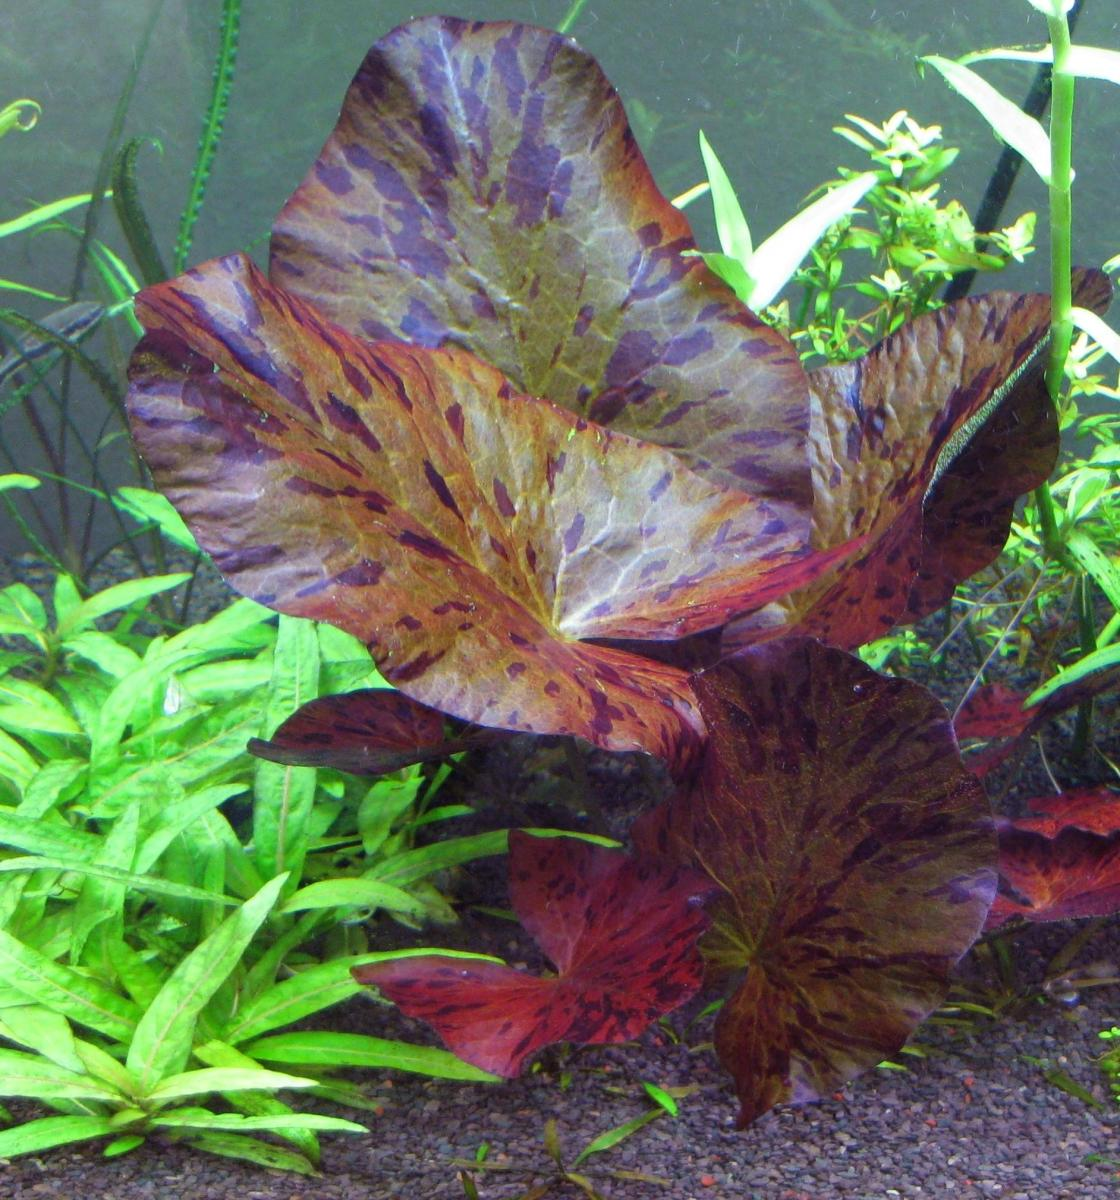 An example of the varigation tiger lotus leaves produce if exposed to intense light.